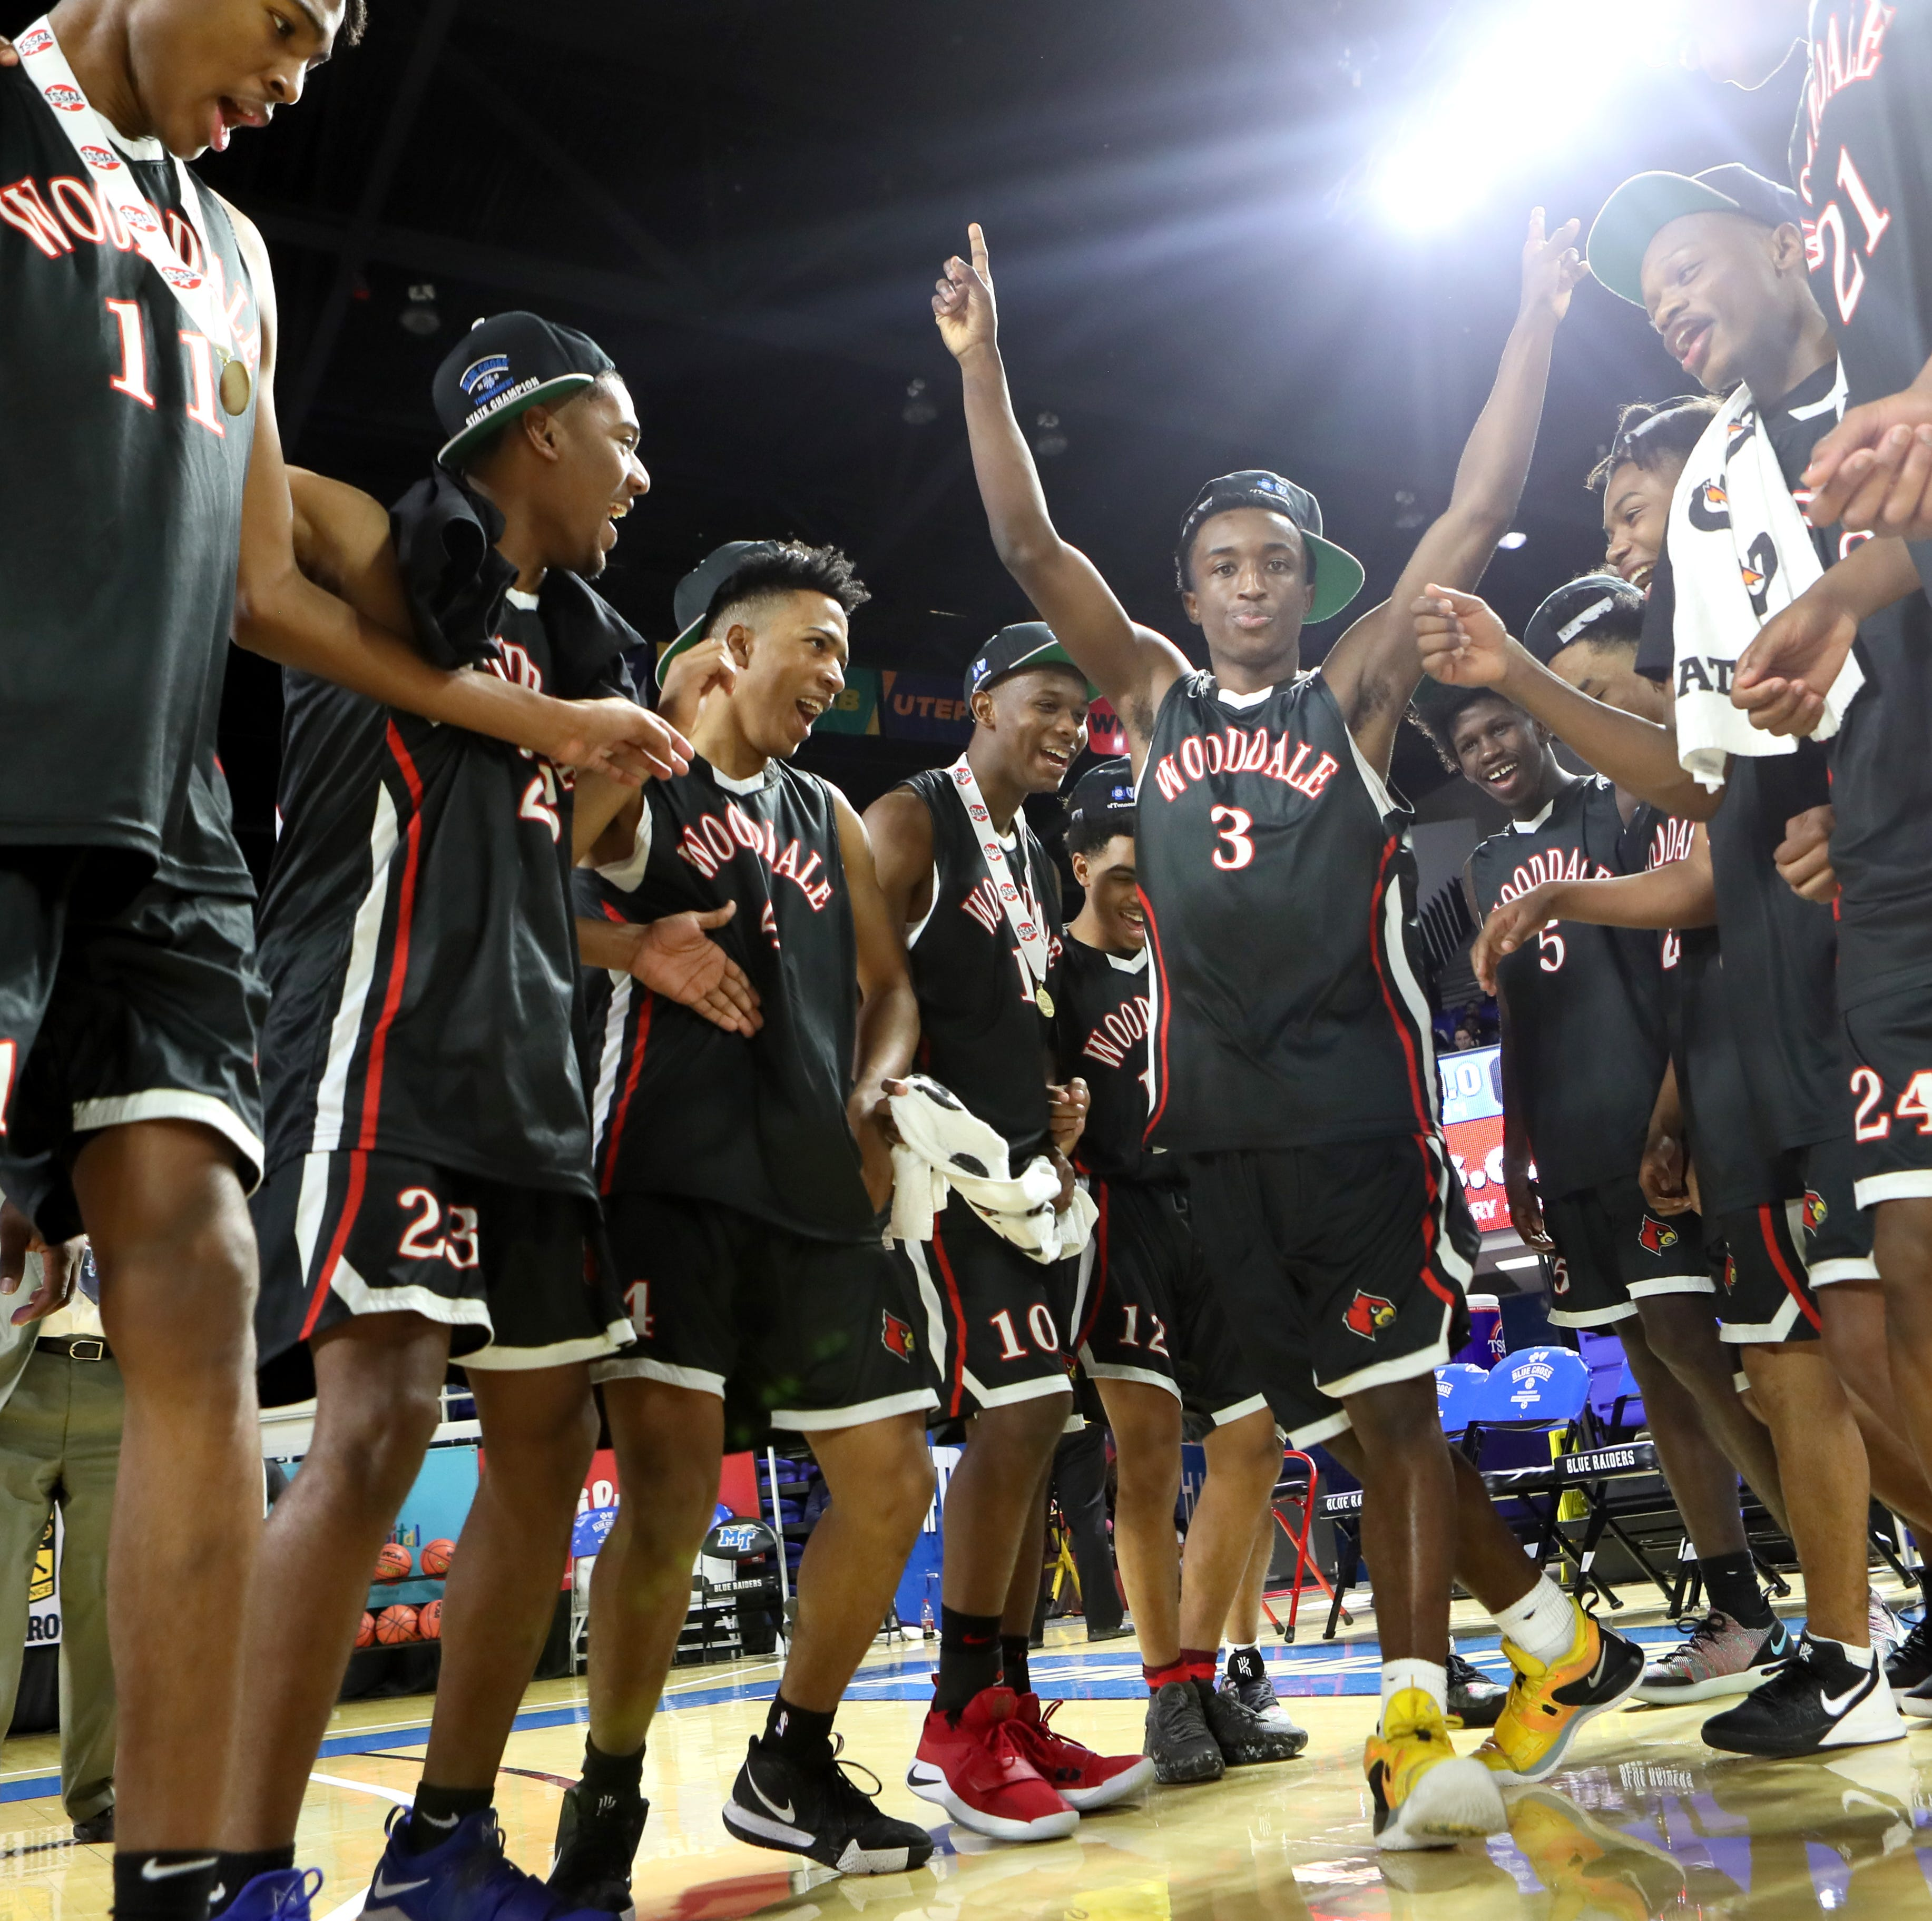 Chandler Lawson wins his fourth state title, as Wooddale wins first in boys basketball